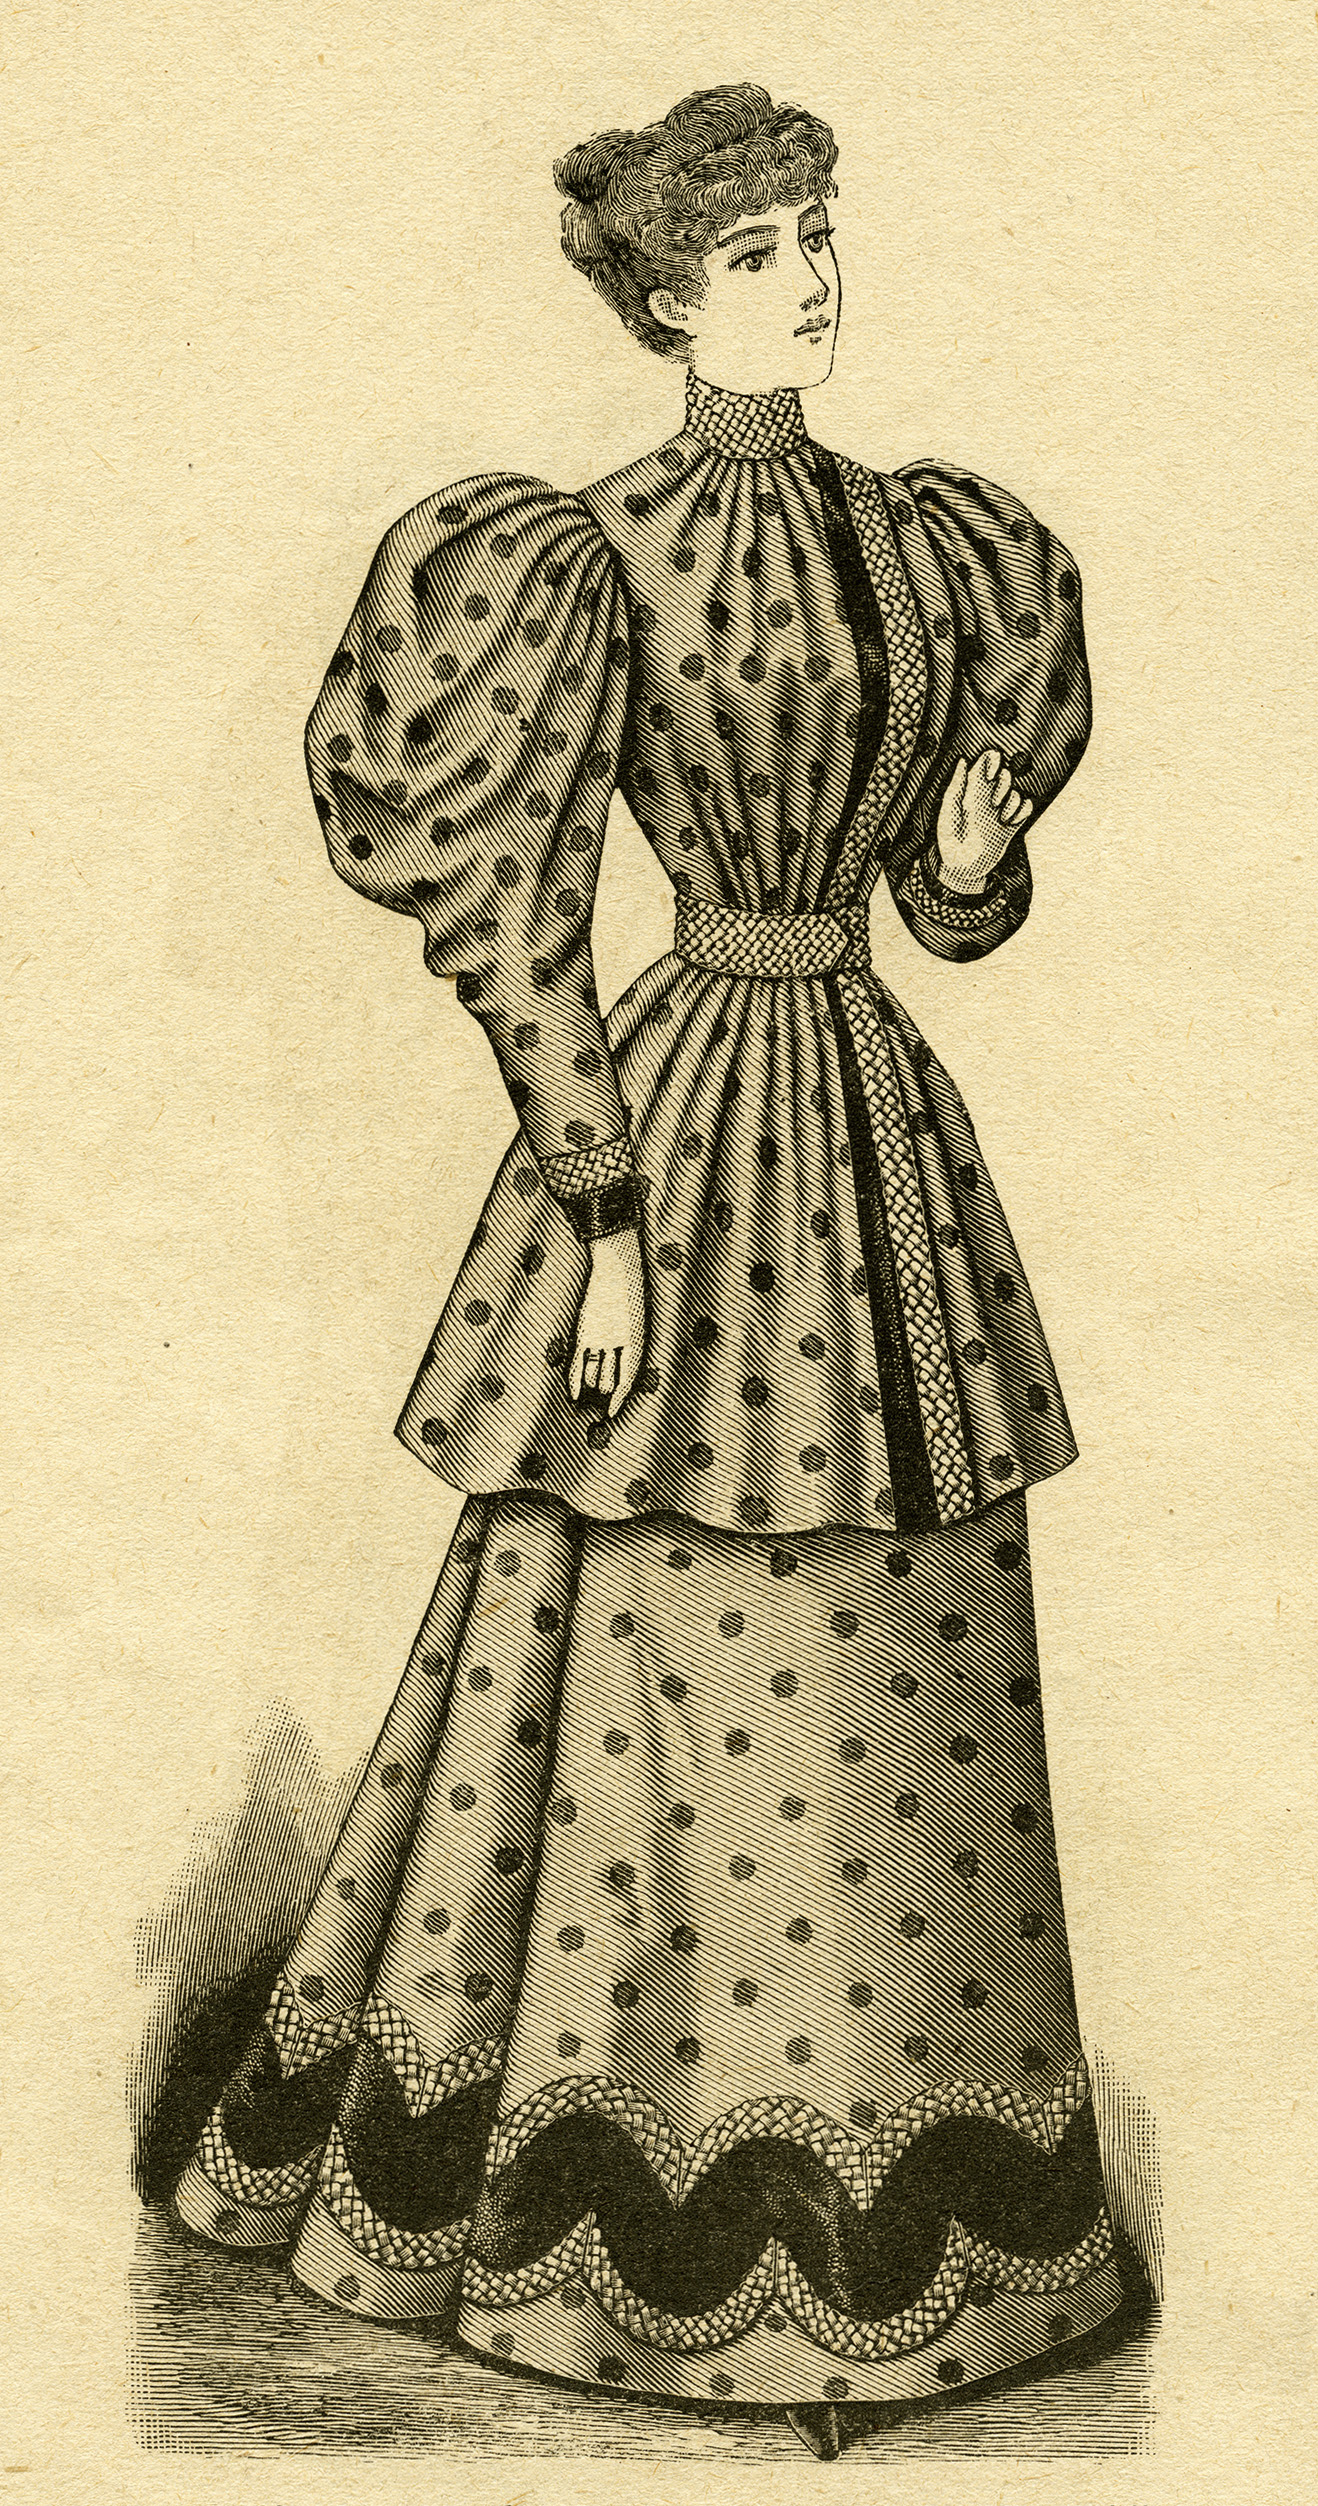 llustration of a Victorian lady in a polka dot outfit that is referred to as a Ladies' House Toilette in the April 1894 issue of The Delineator magazine